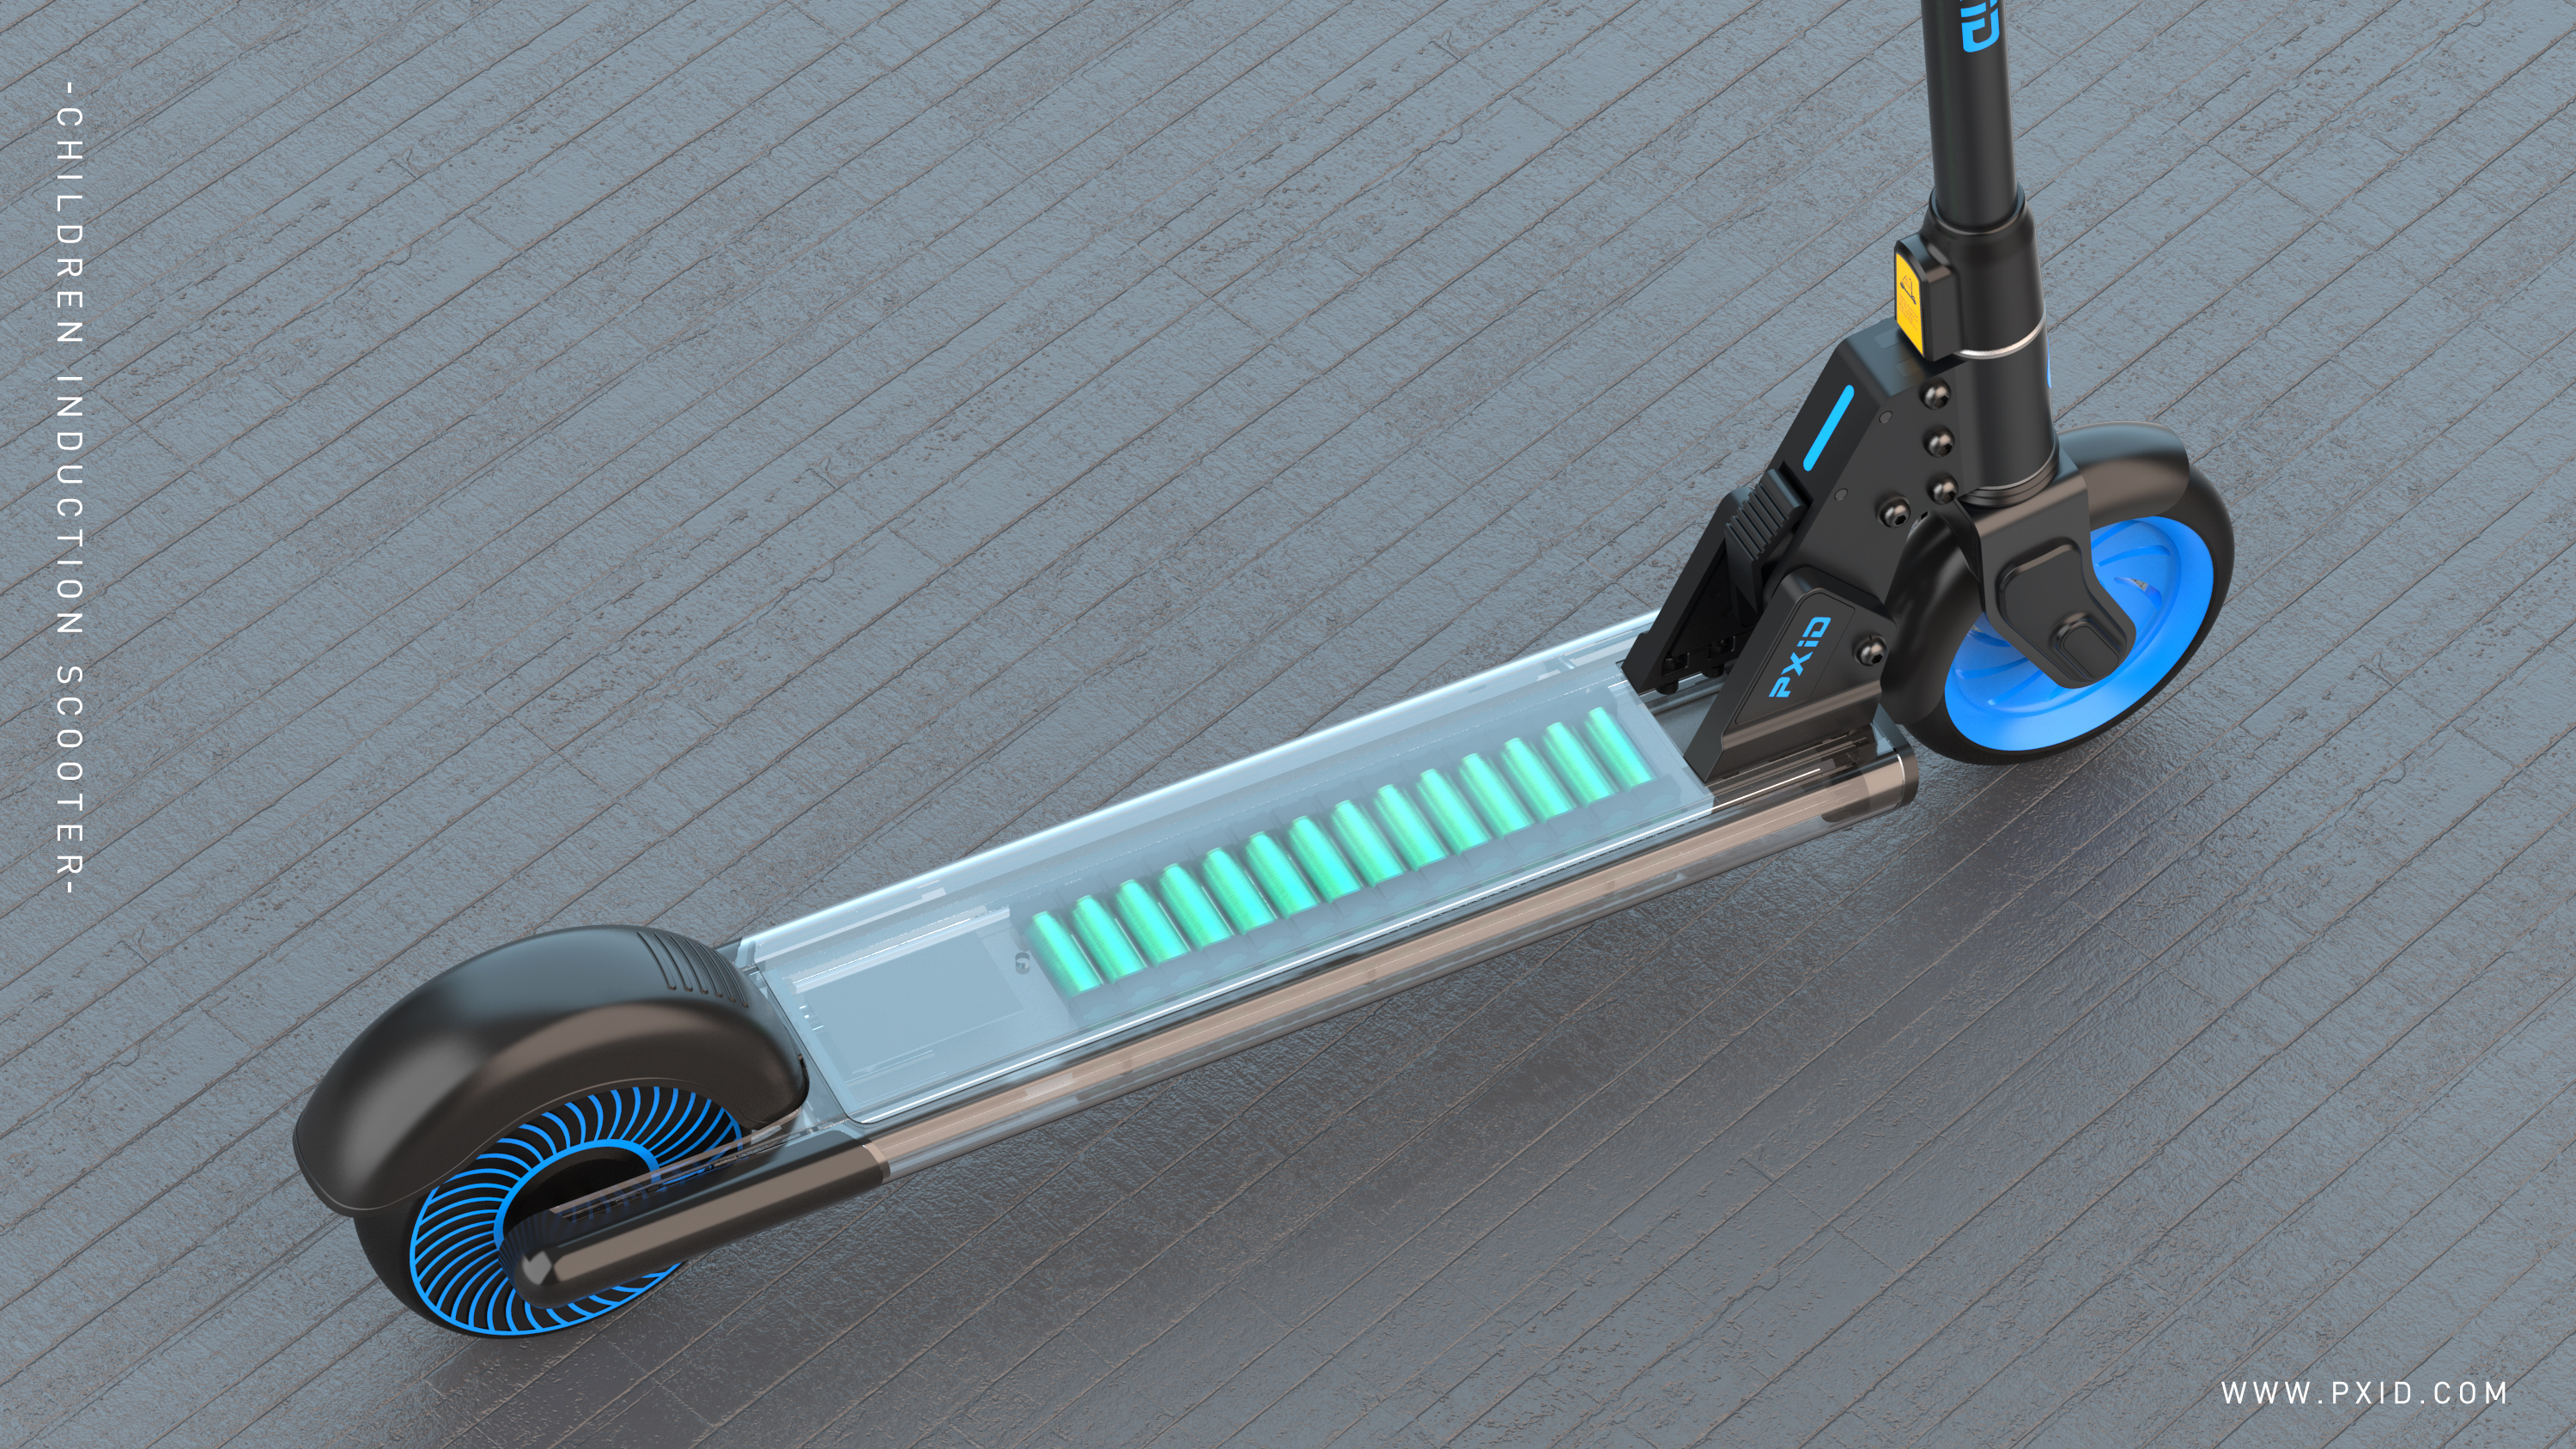 2020 PXID designed children's electric scooter